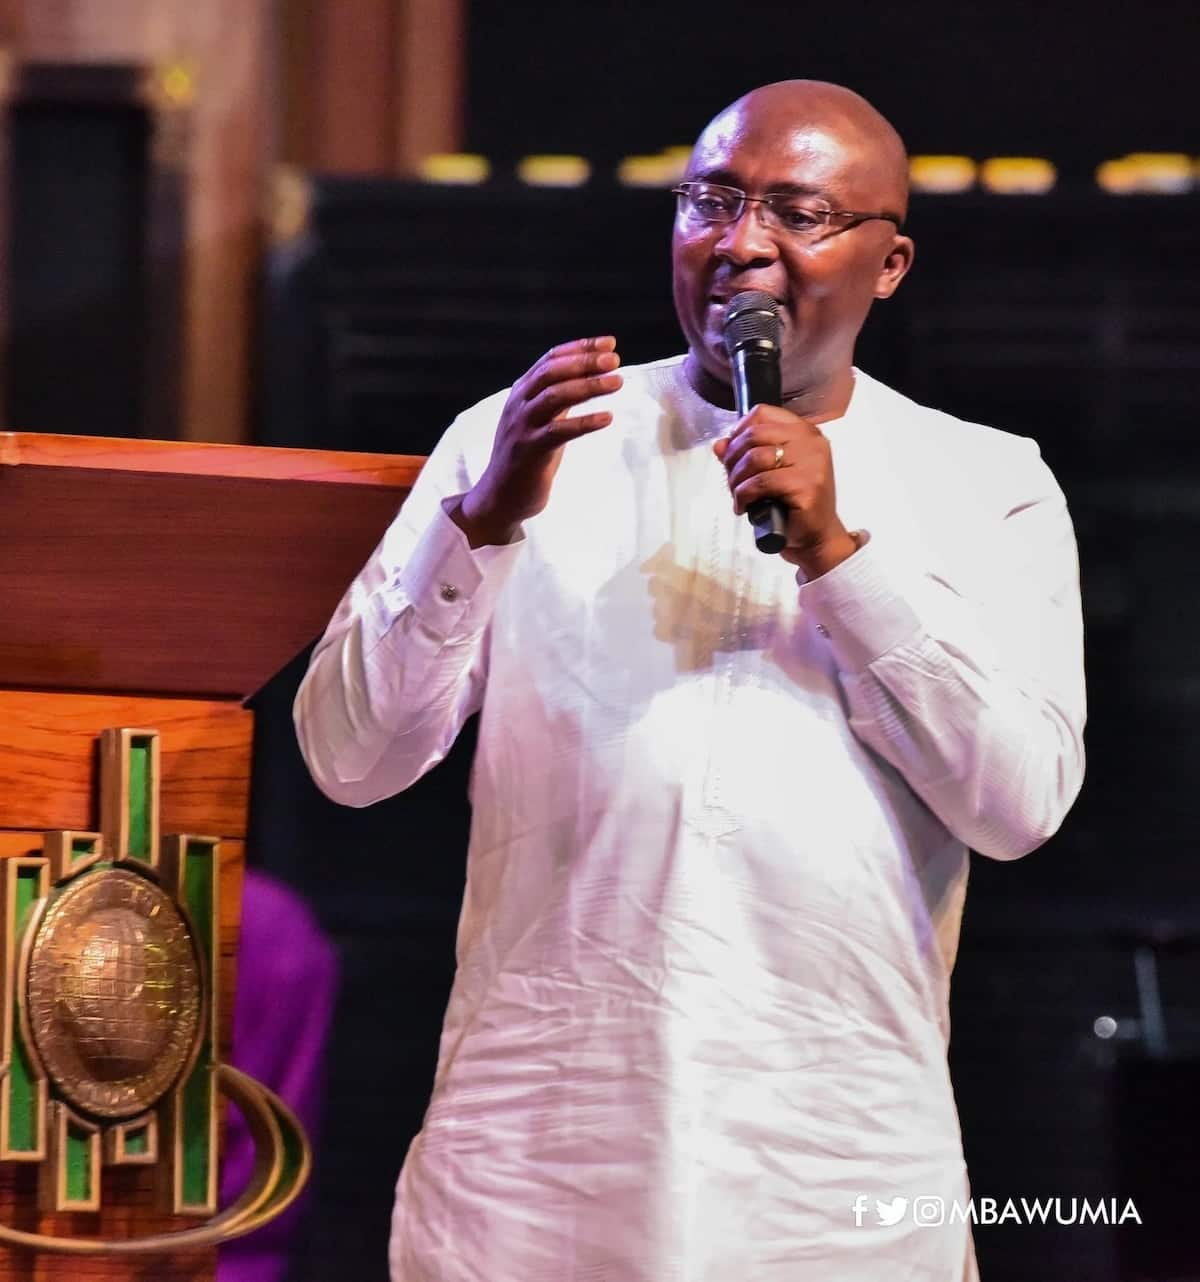 Vice President Dr. Bawumia speaks on how he believes God saved him